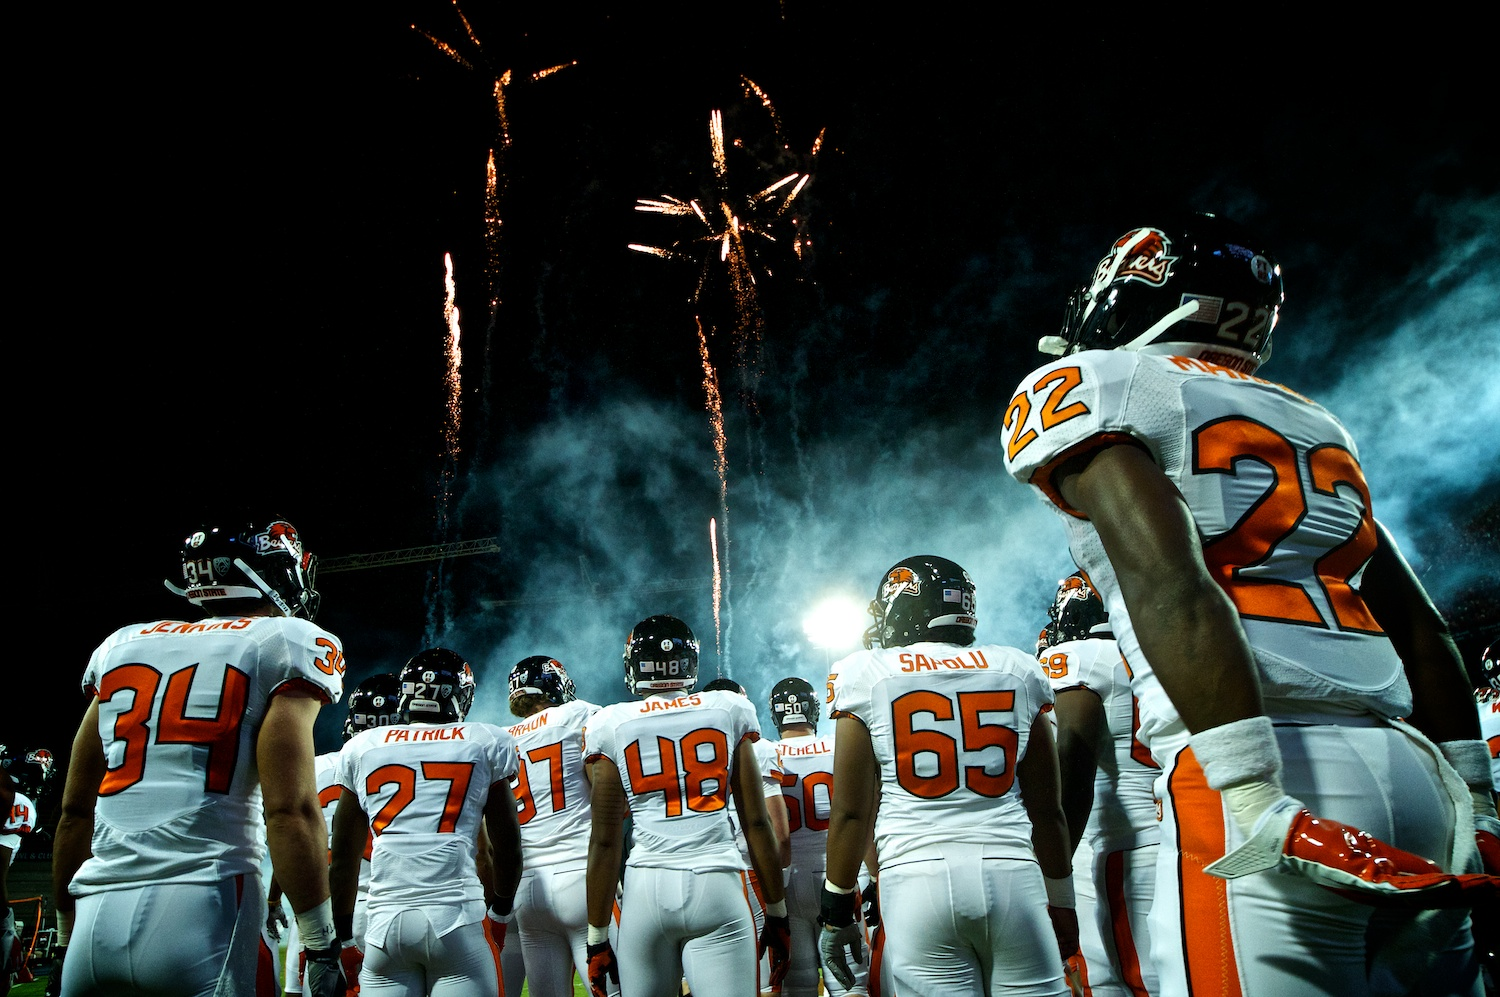 web_osu_football2012_002